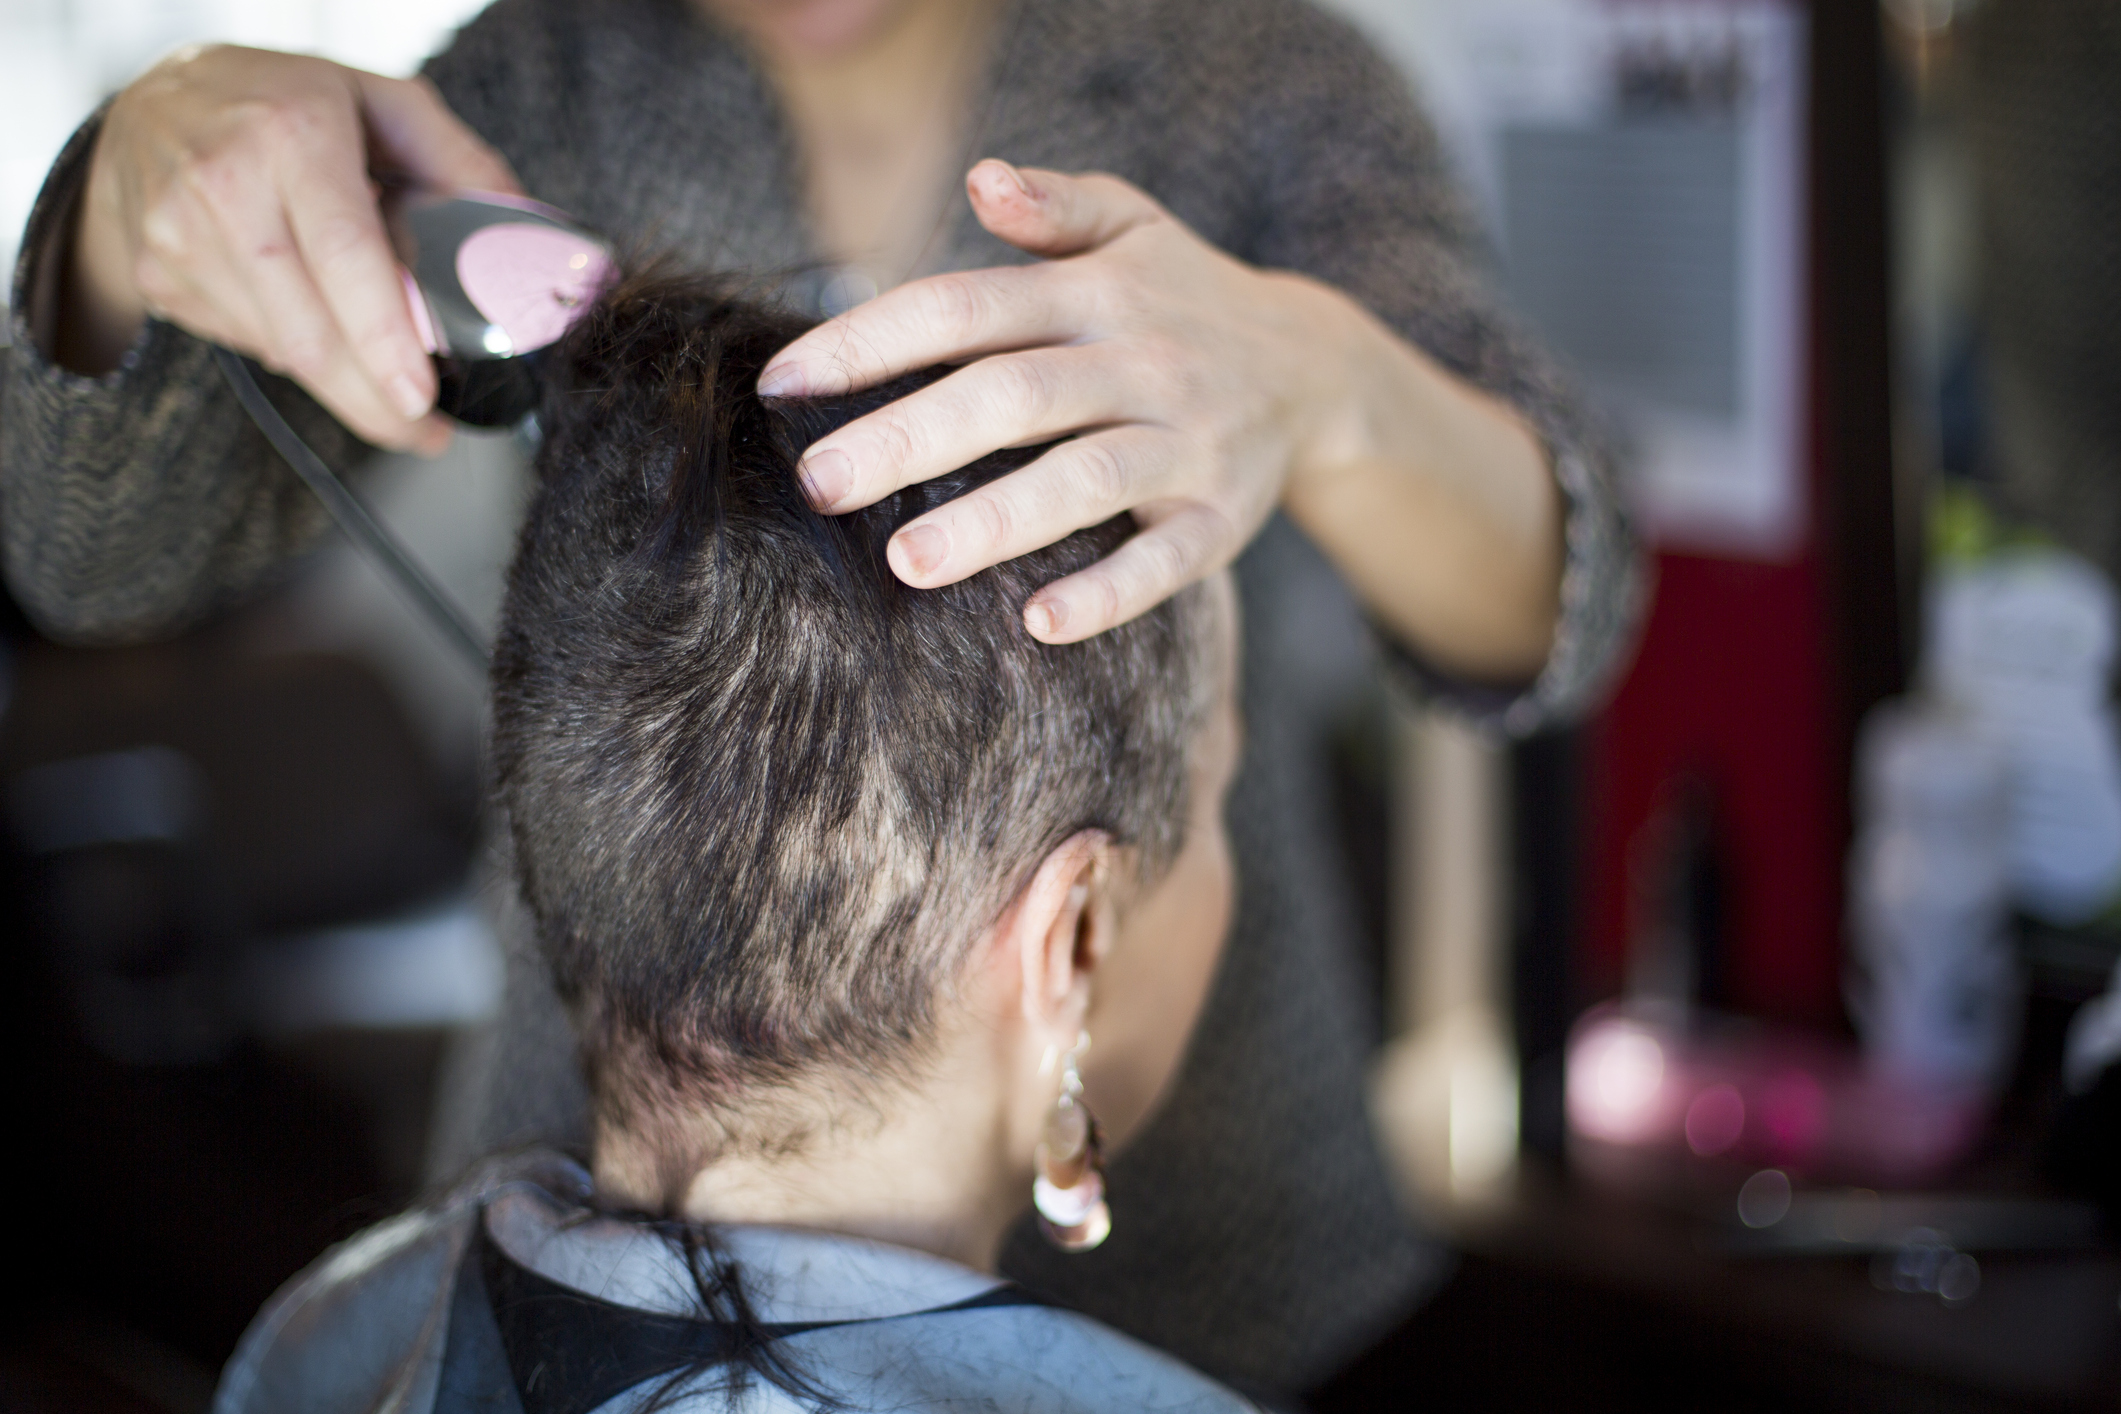 Navigating the Intensely Gendered World of Hair Salons When You're Queer